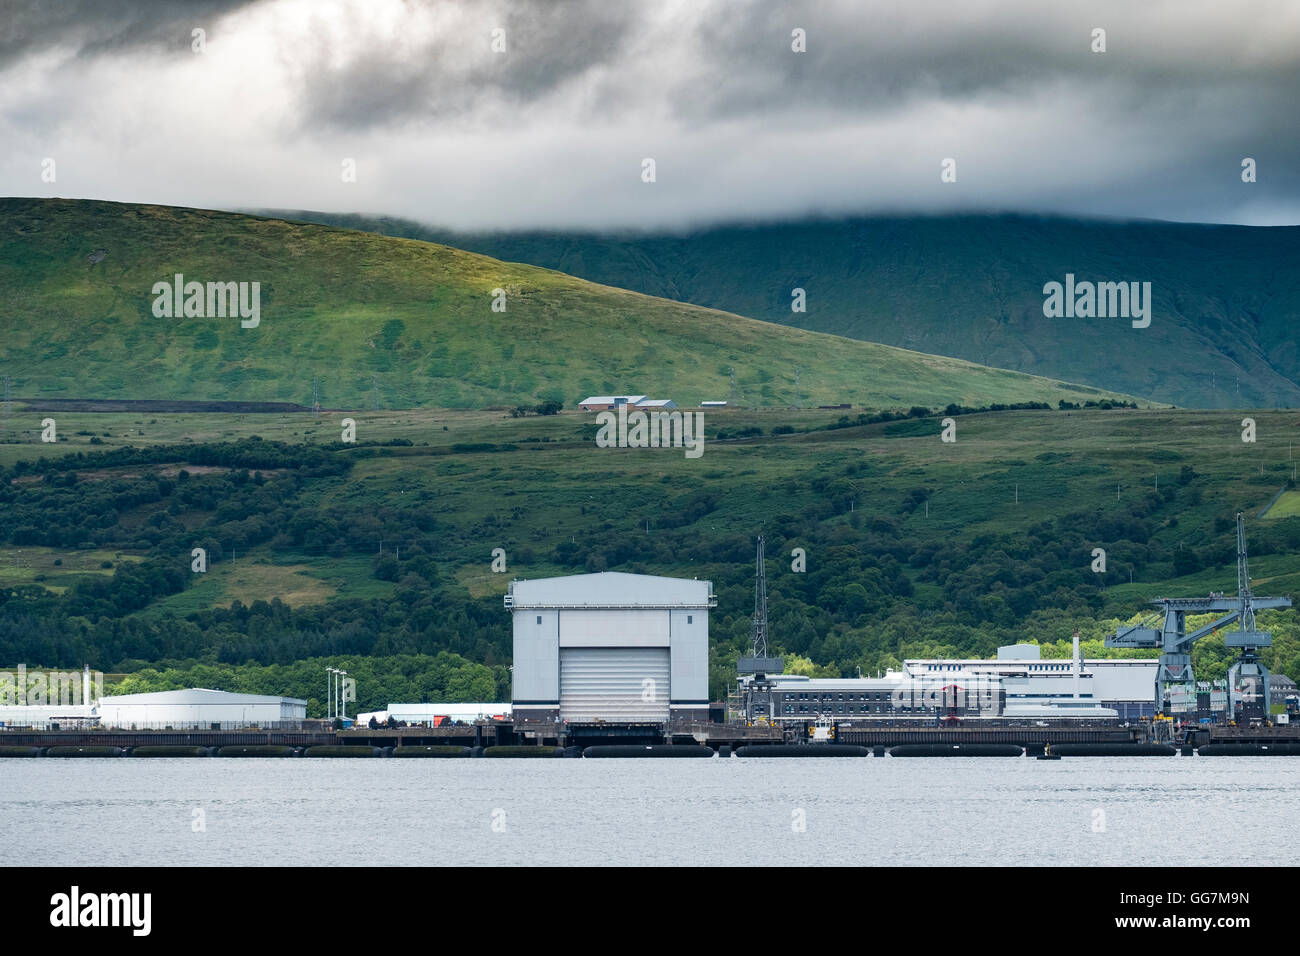 View of Faslane naval base on the Clyde  home of Trident nuclear deterrent submarines in Scotland, United Kingdom - Stock Image